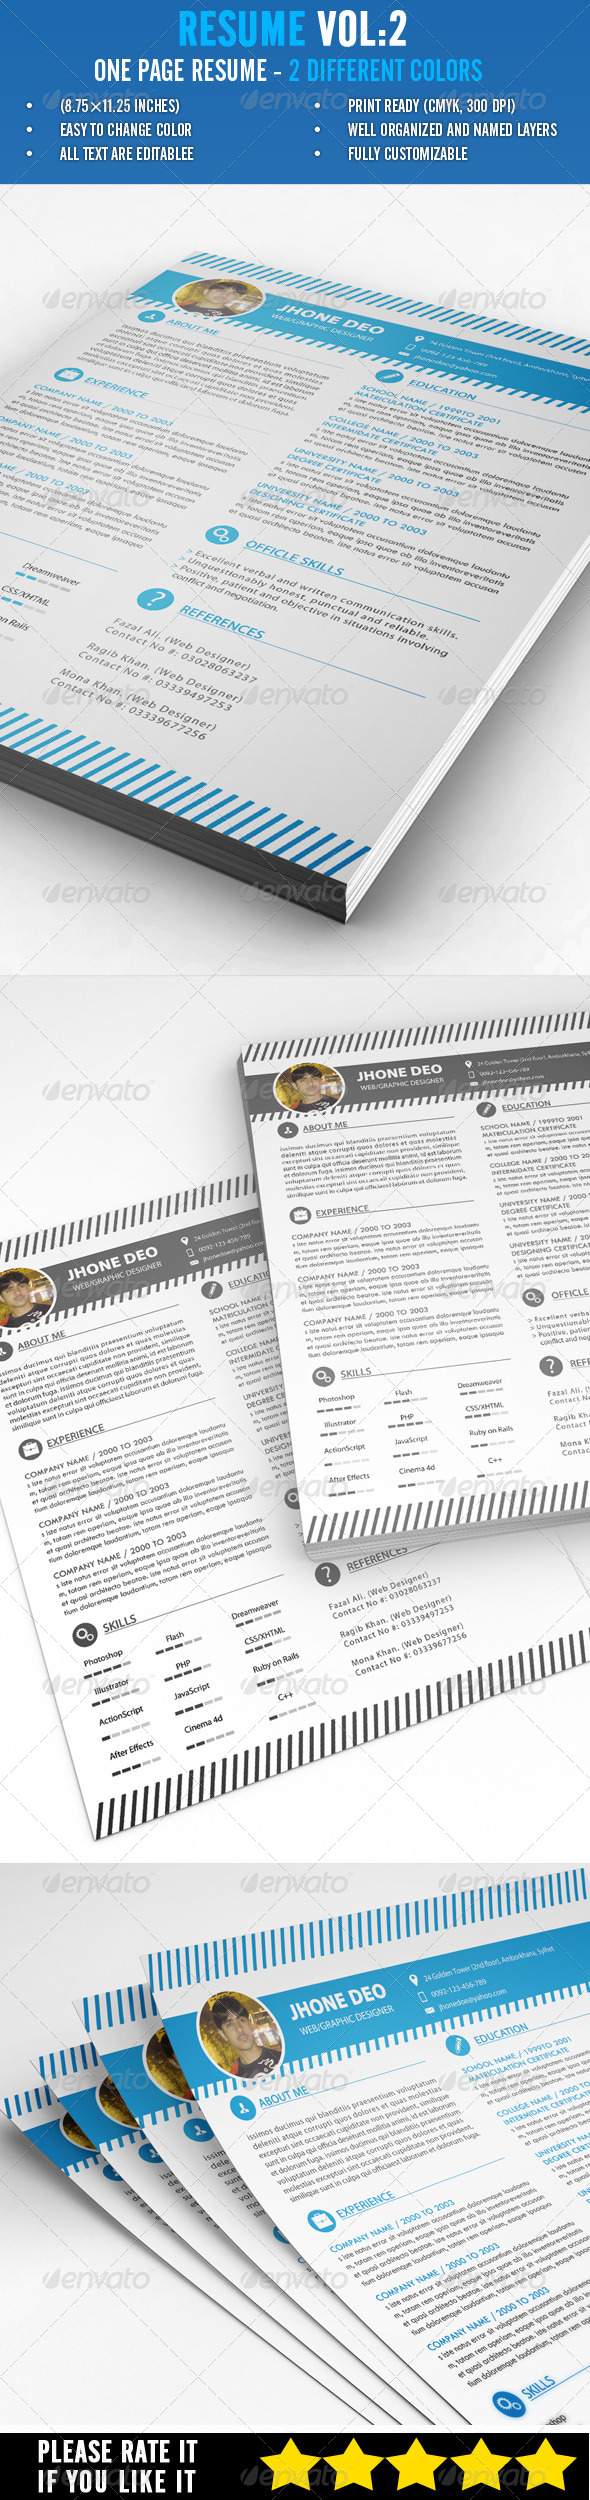 GraphicRiver Resume Vol 2 6813099